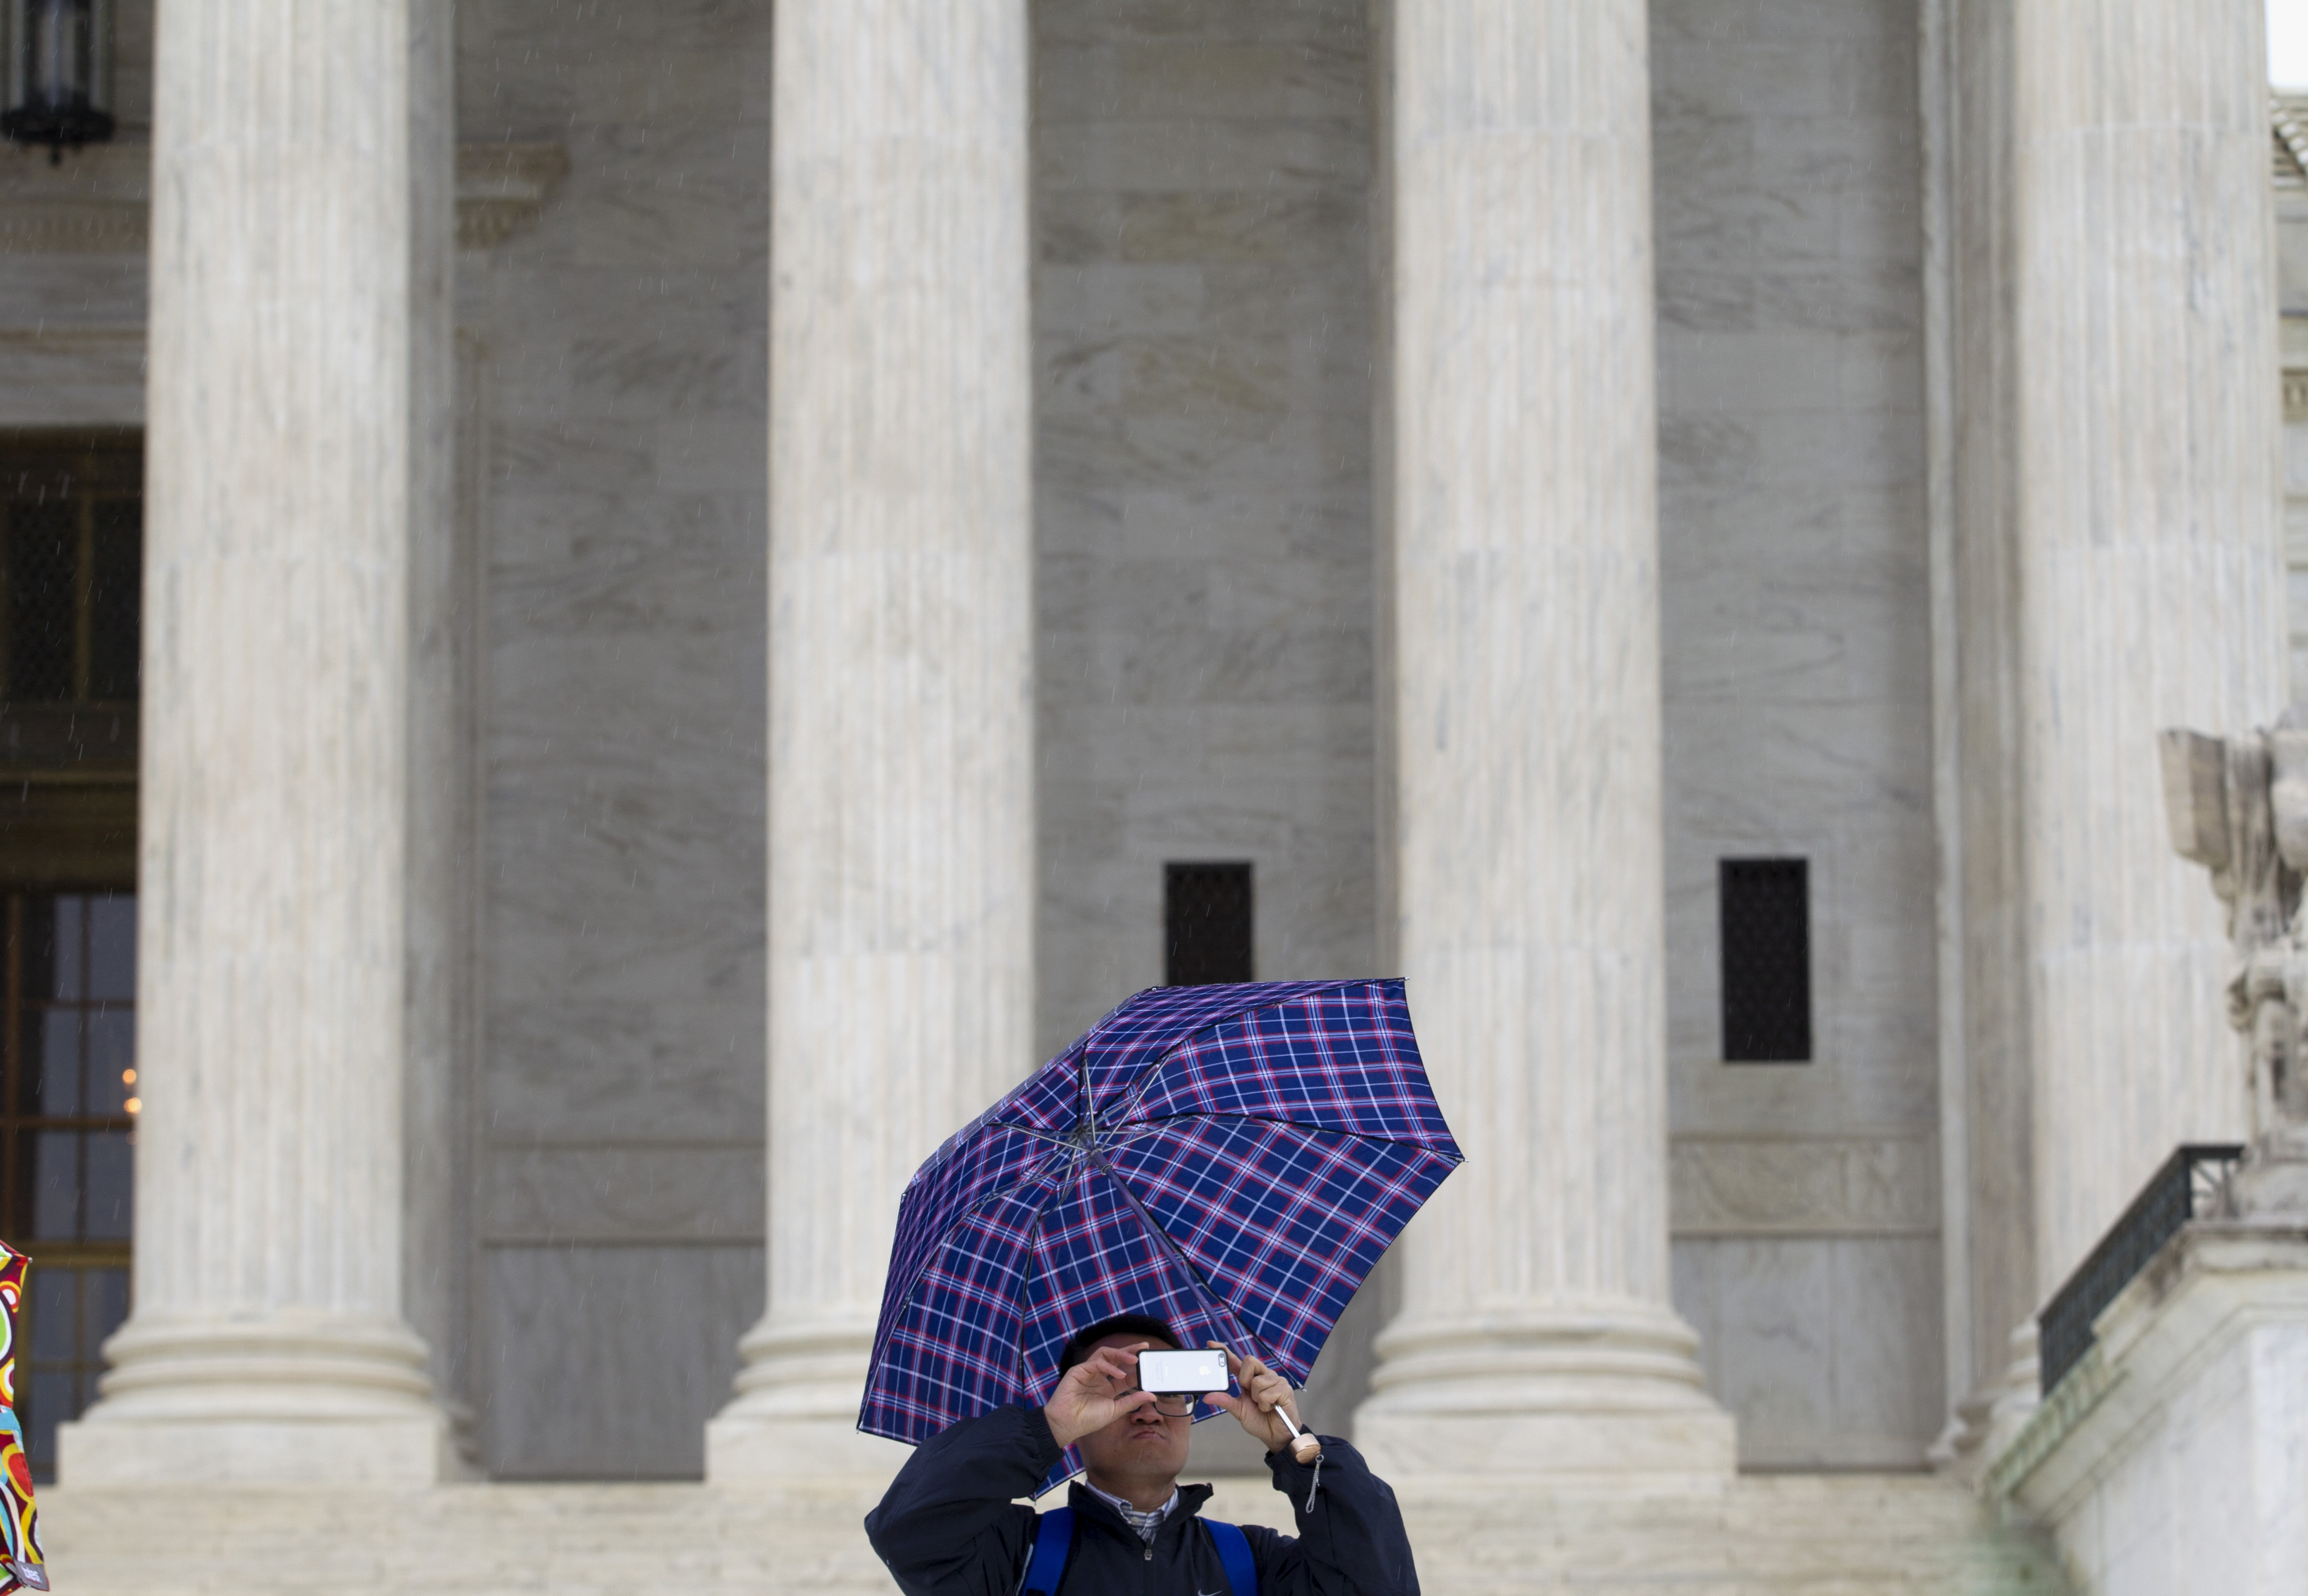 A Supreme Court visitor takes pictures with his cell phone outside the Supreme Court in Washington, D.C., Tuesday.